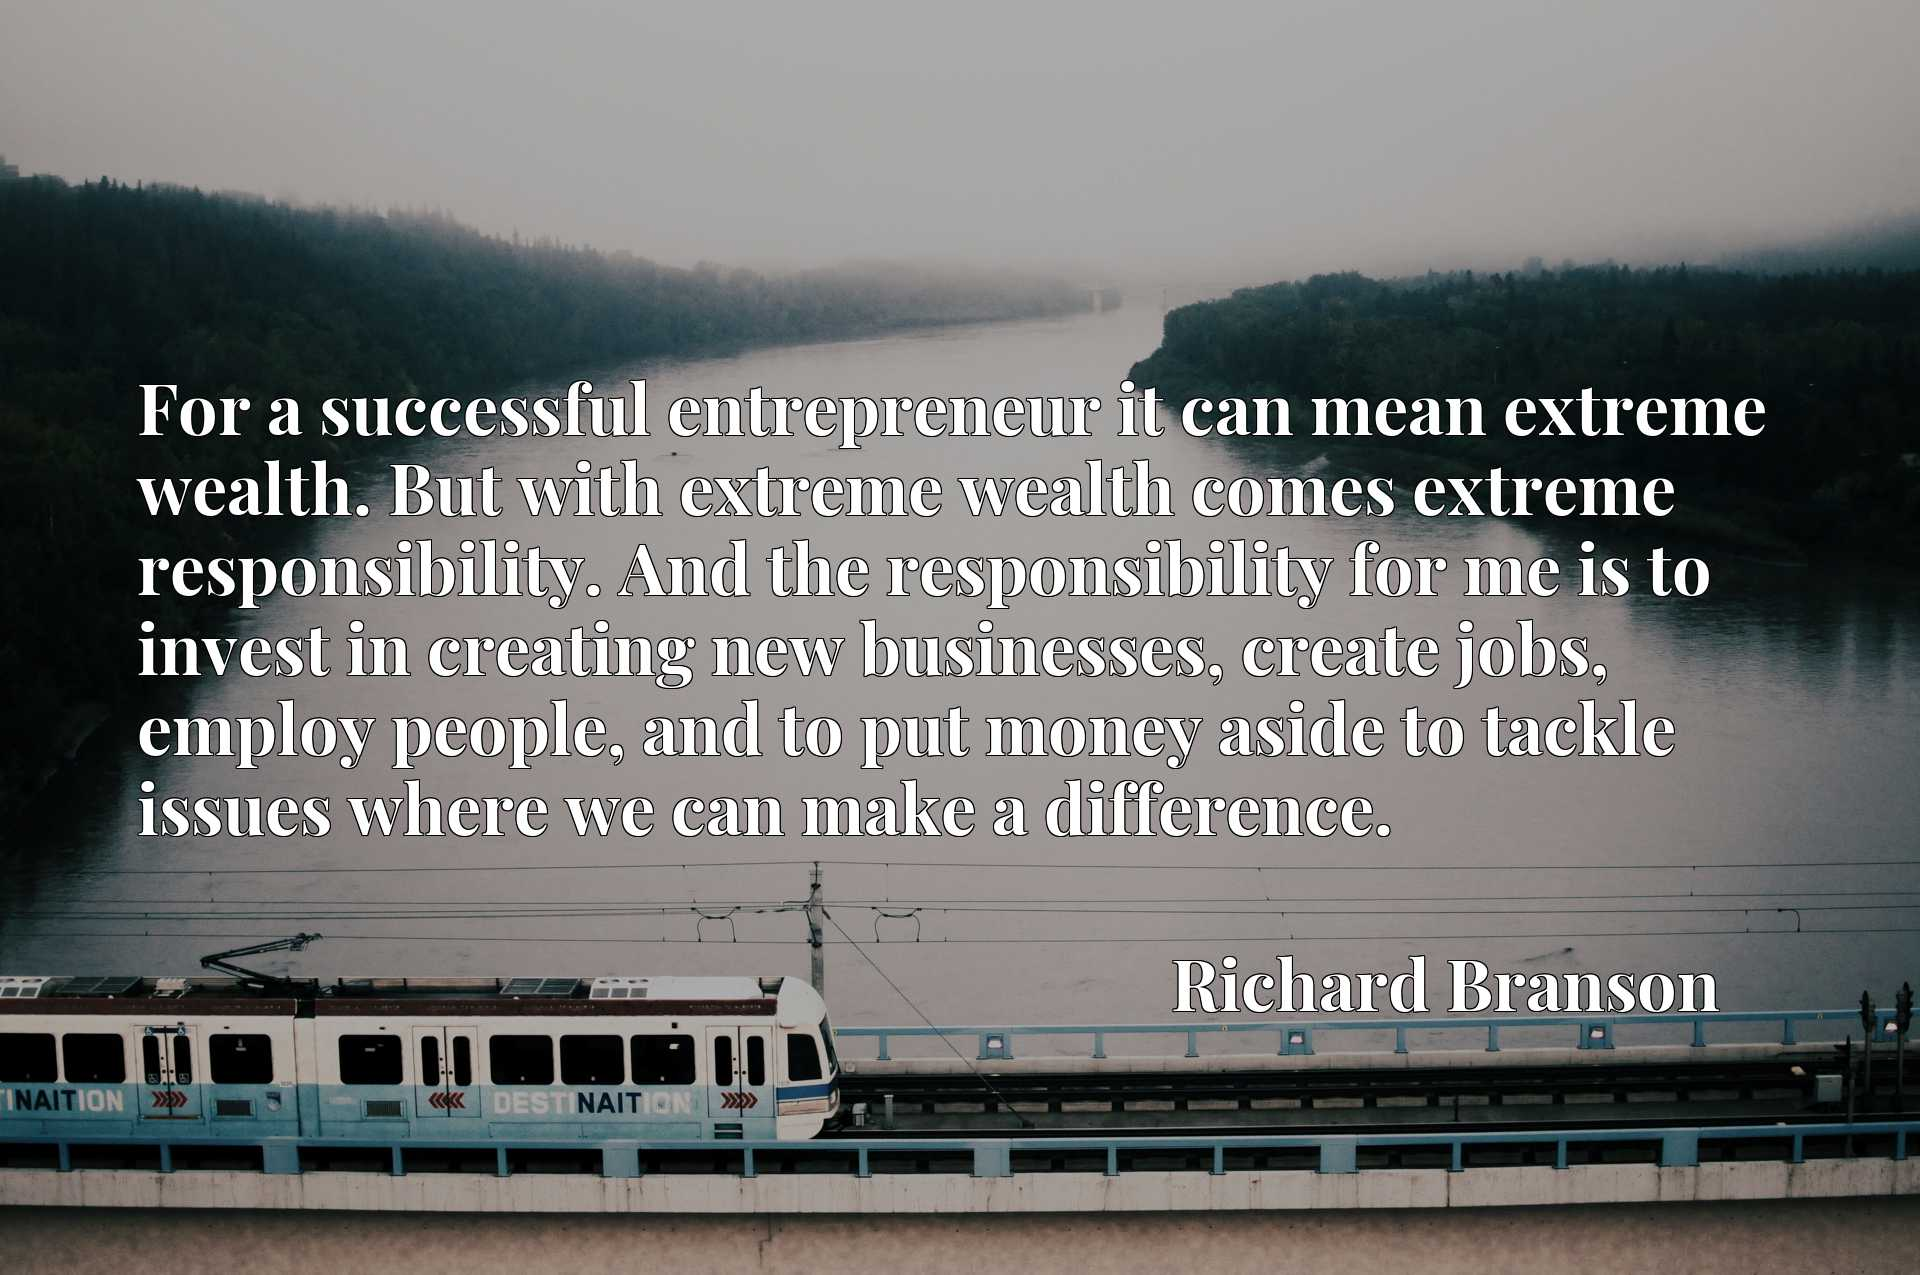 For a successful entrepreneur it can mean extreme wealth. But with extreme wealth comes extreme responsibility. And the responsibility for me is to invest in creating new businesses, create jobs, employ people, and to put money aside to tackle issues where we can make a difference.